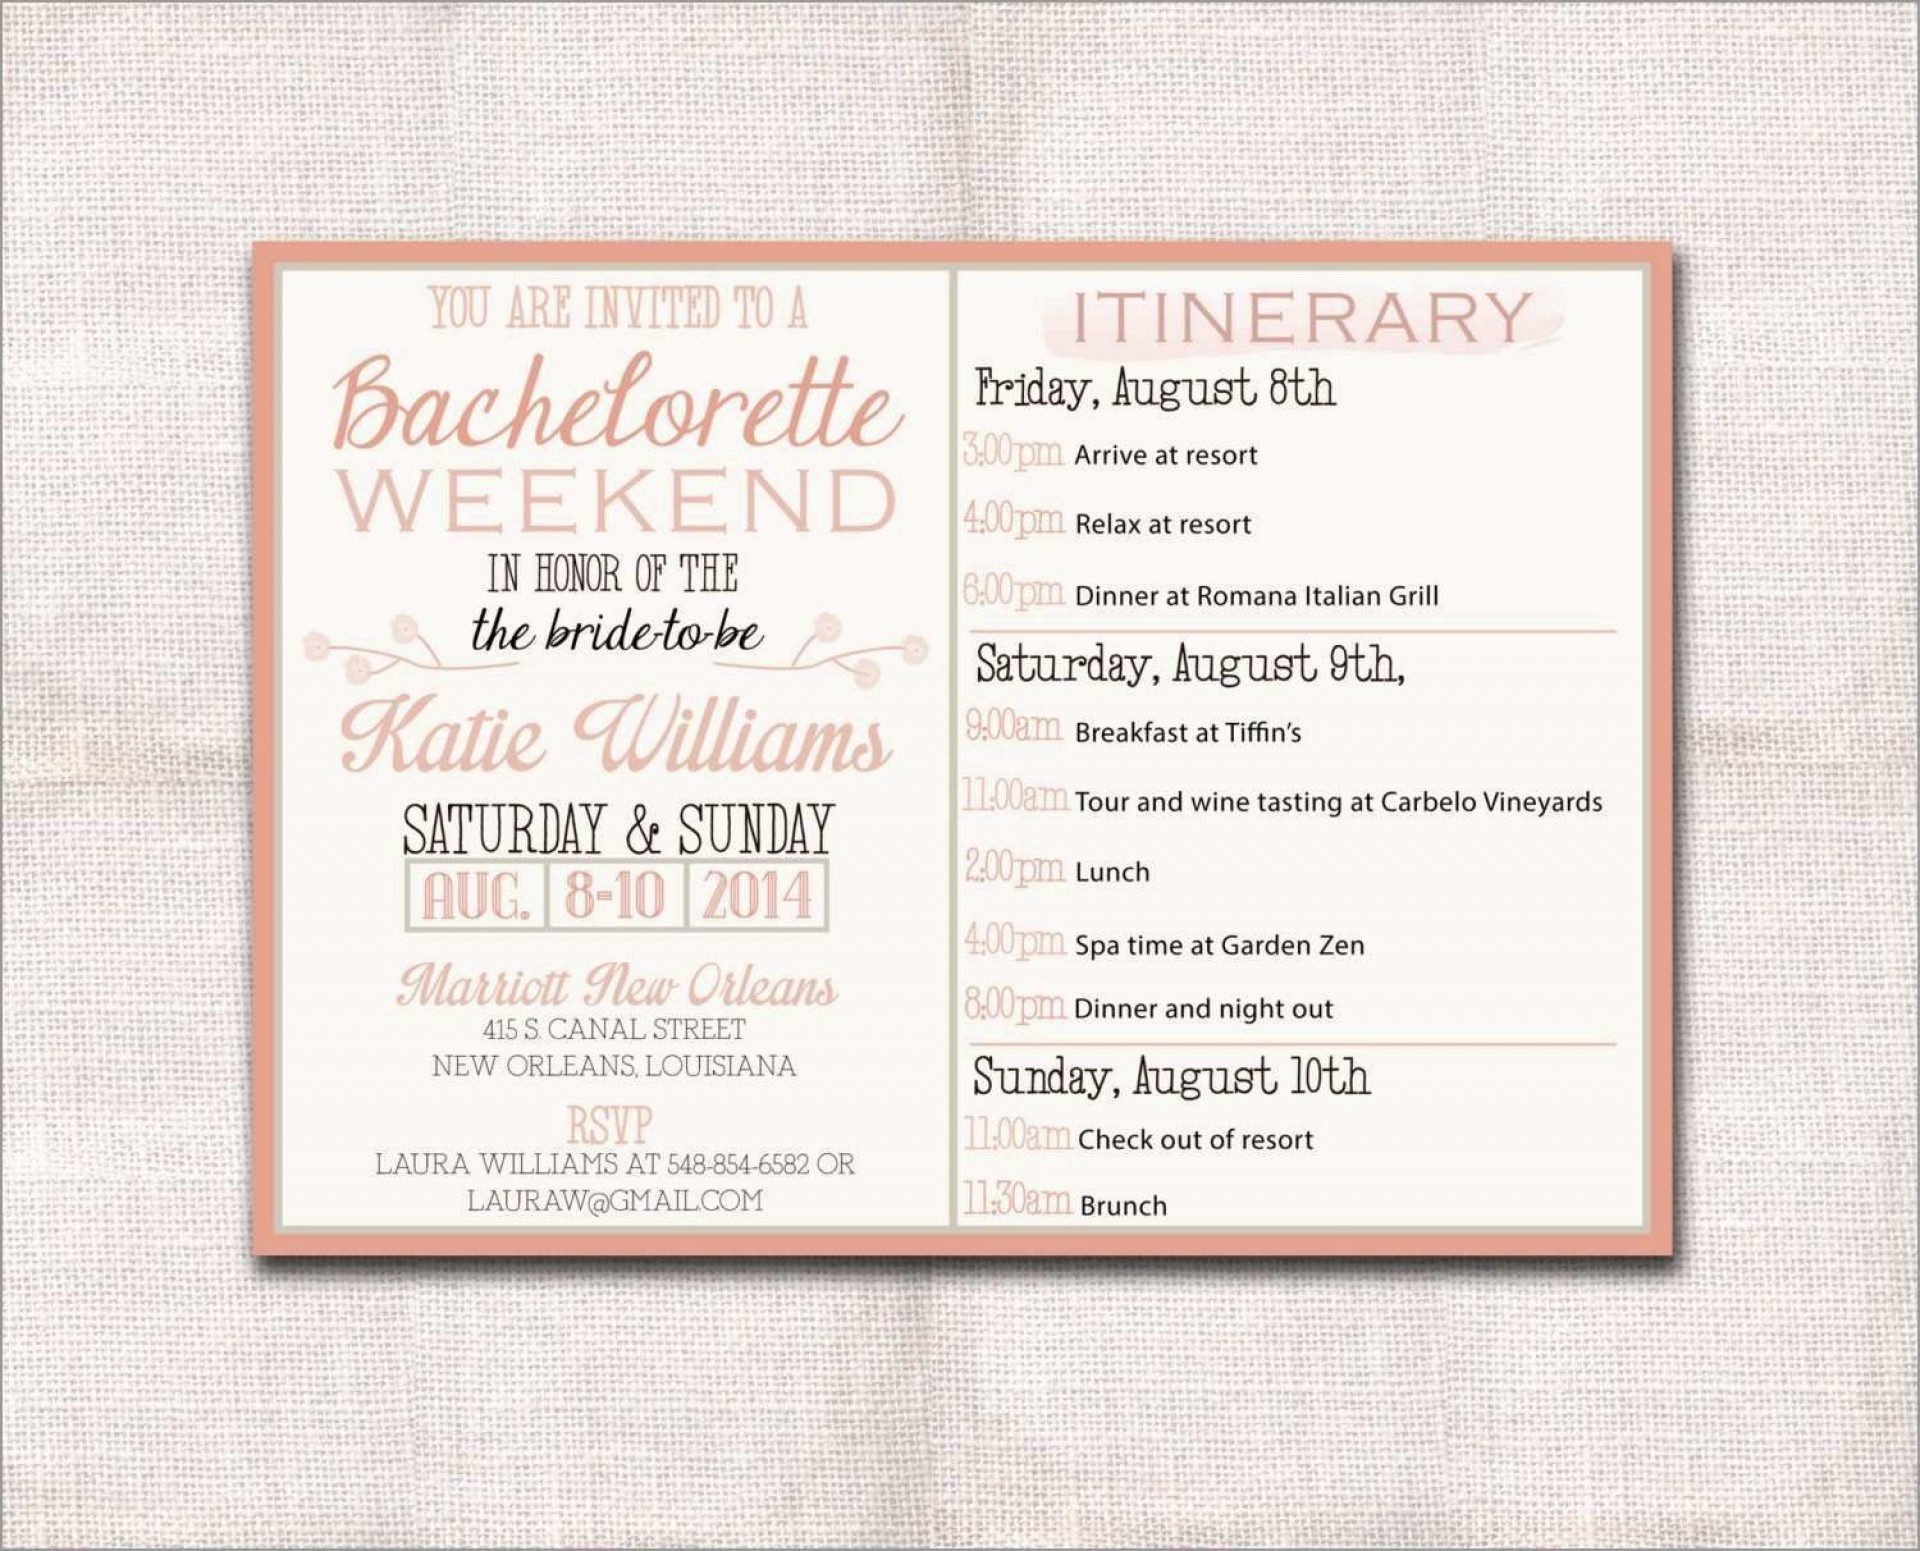 002 Magnificent Bachelorette Party Itinerary Template Free Picture  Download1920